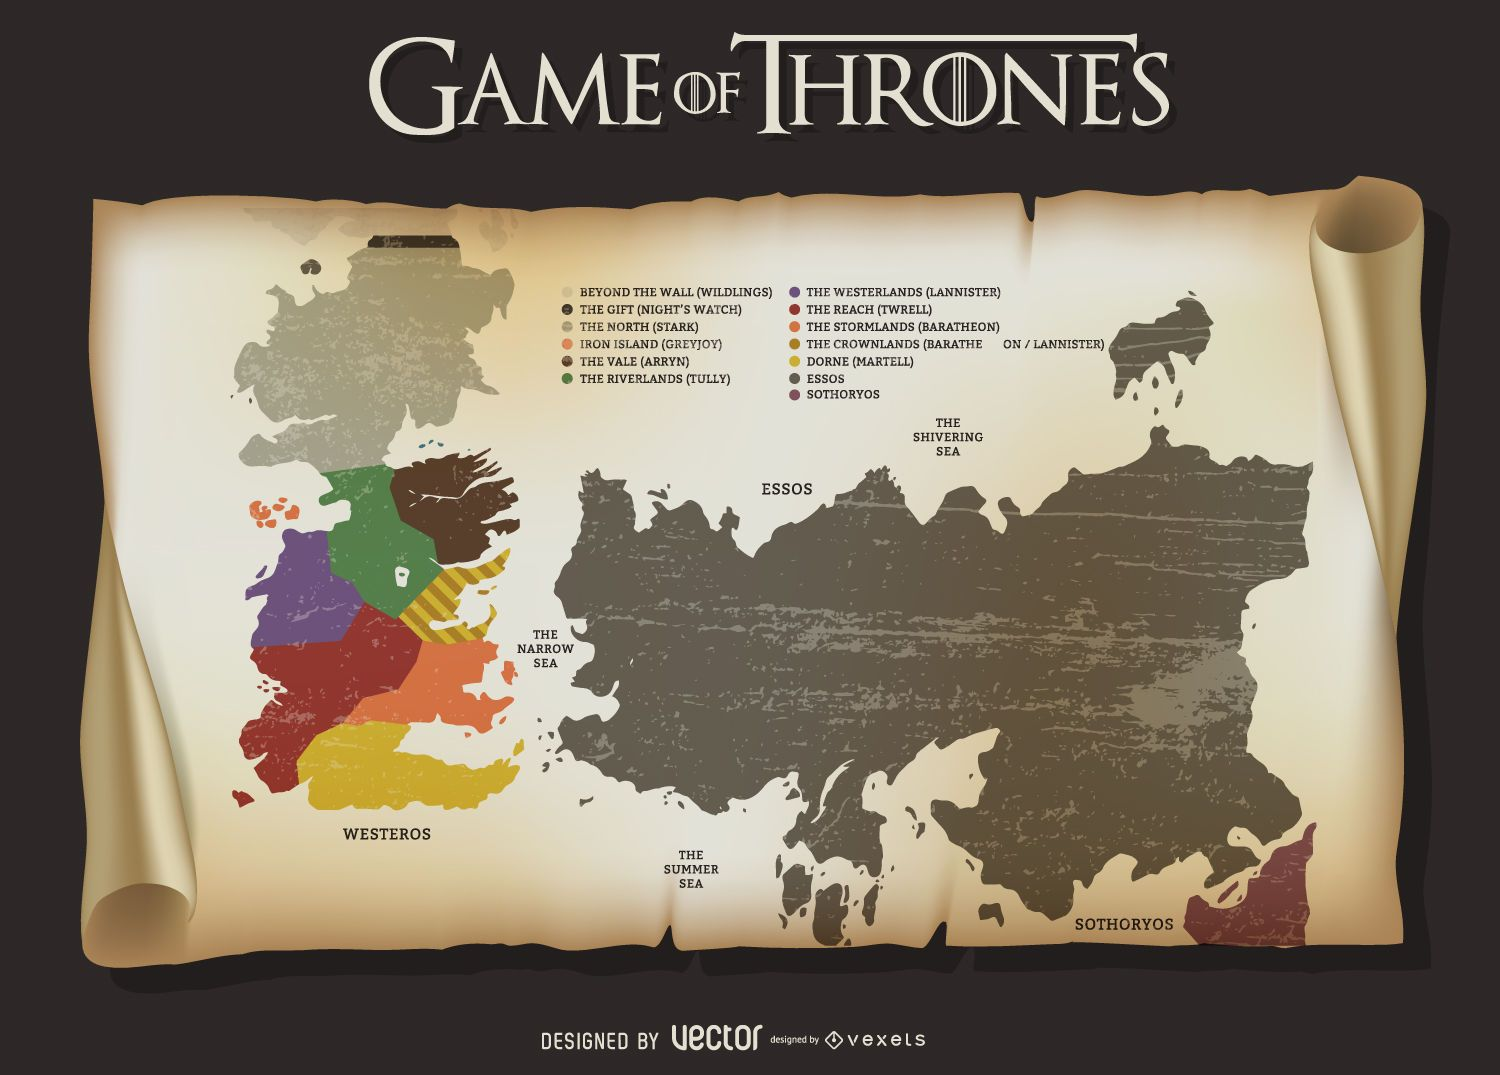 game of thrones mapa Game of Thrones map   Vector download game of thrones mapa